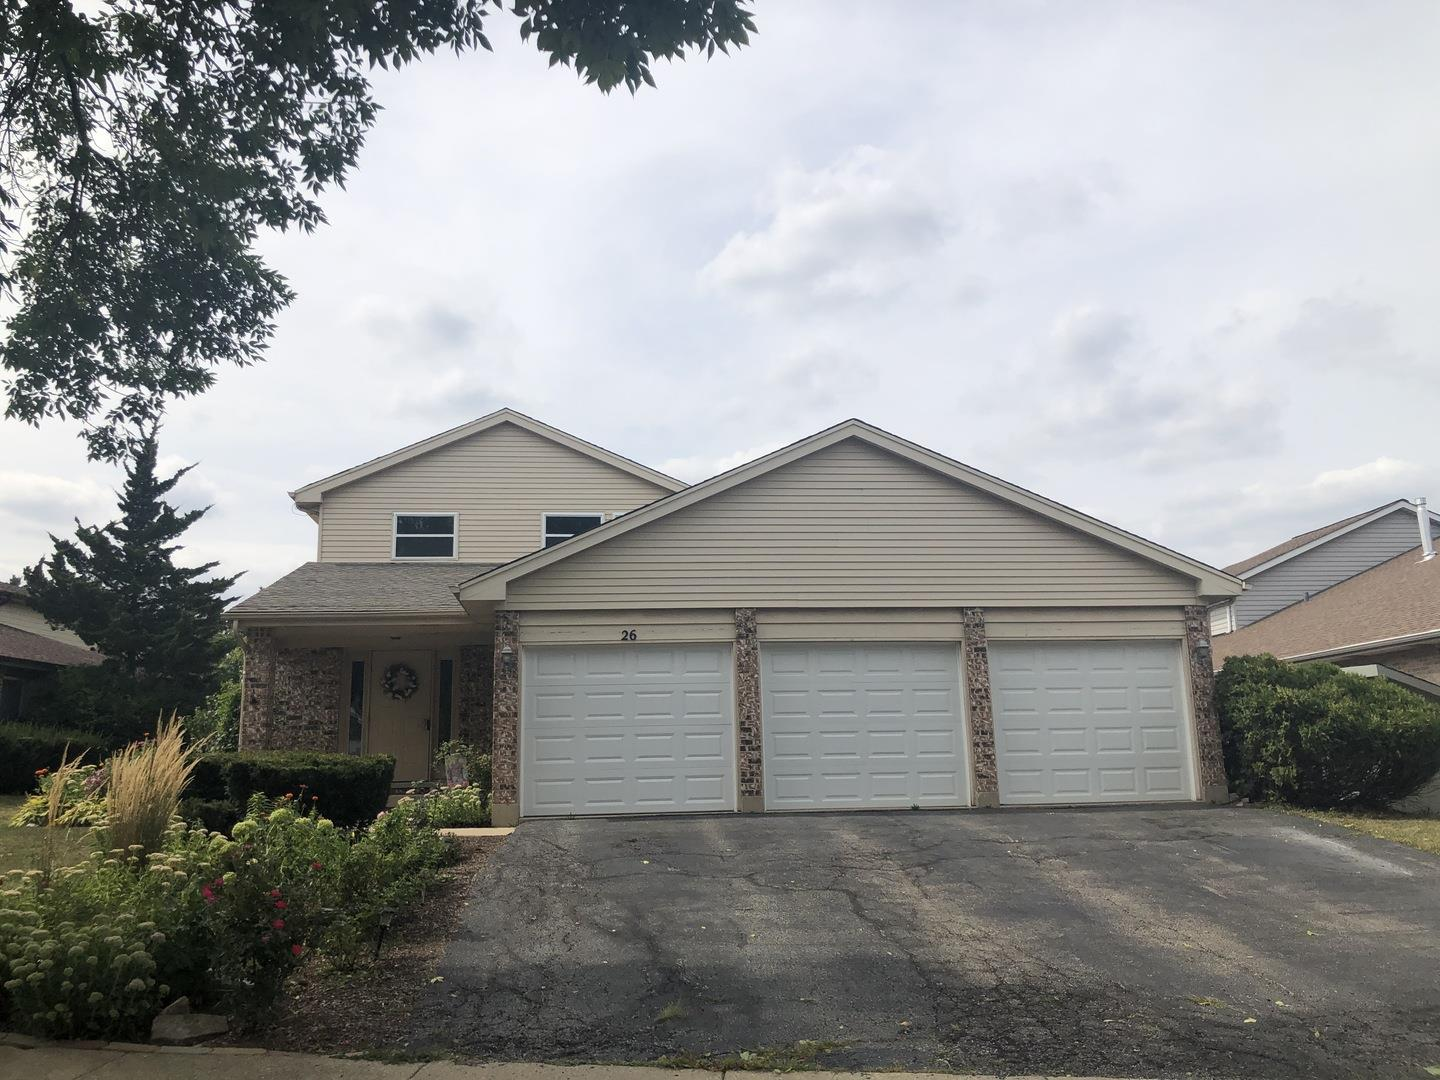 26 Terry Drive #B, Roselle, IL 60172 - #: 10844949